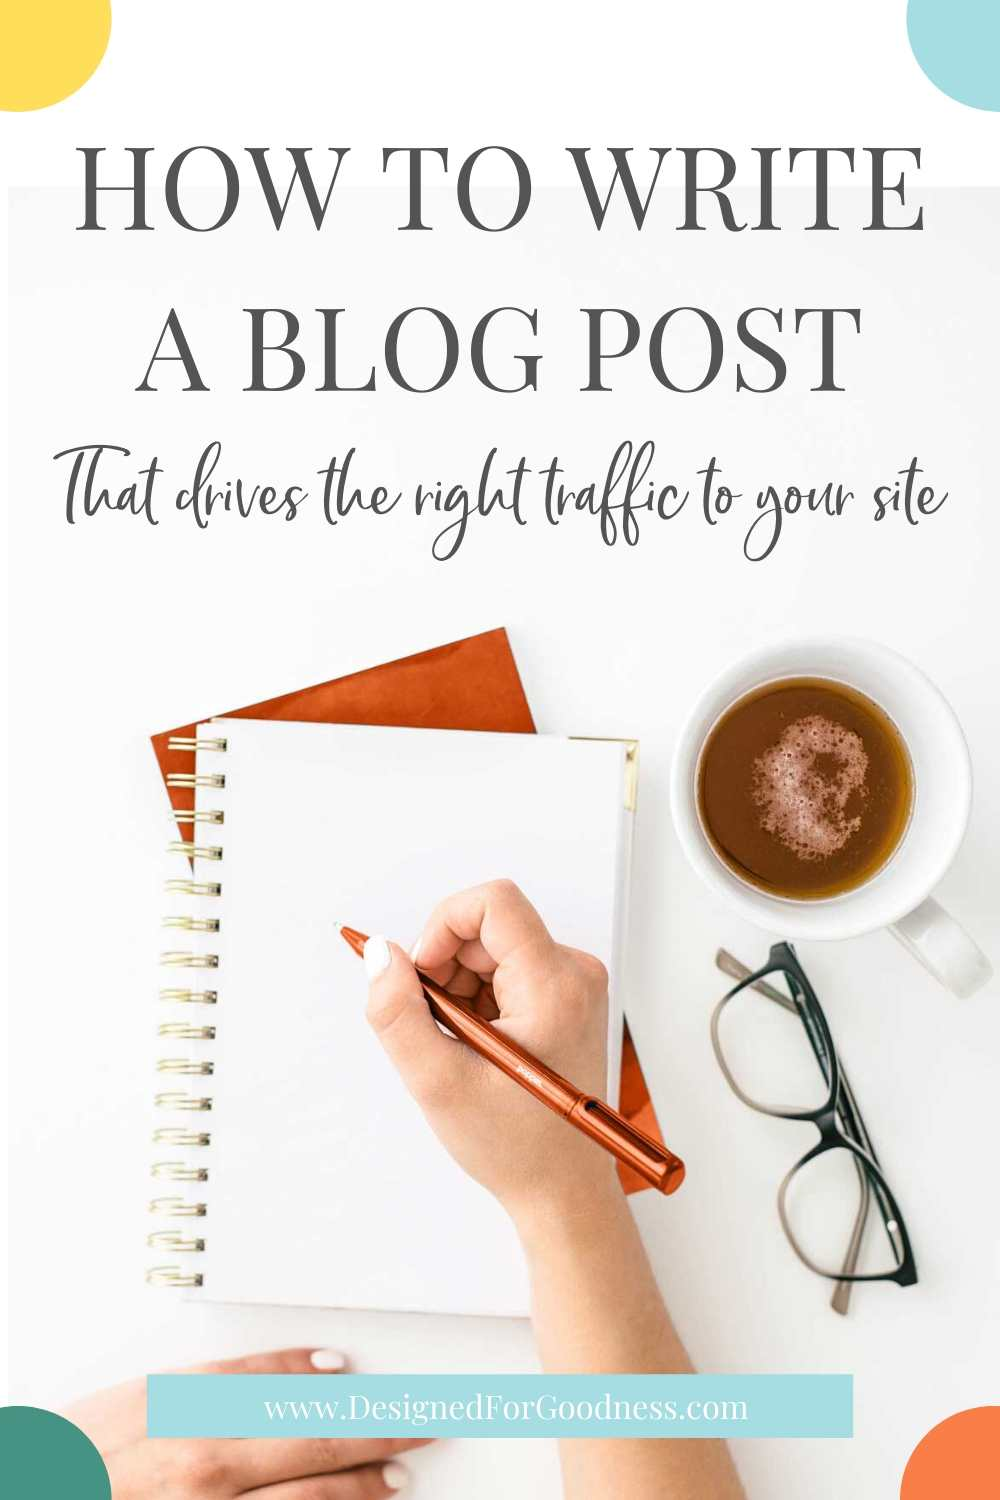 How to write a blog post that actually sends traffic to your site